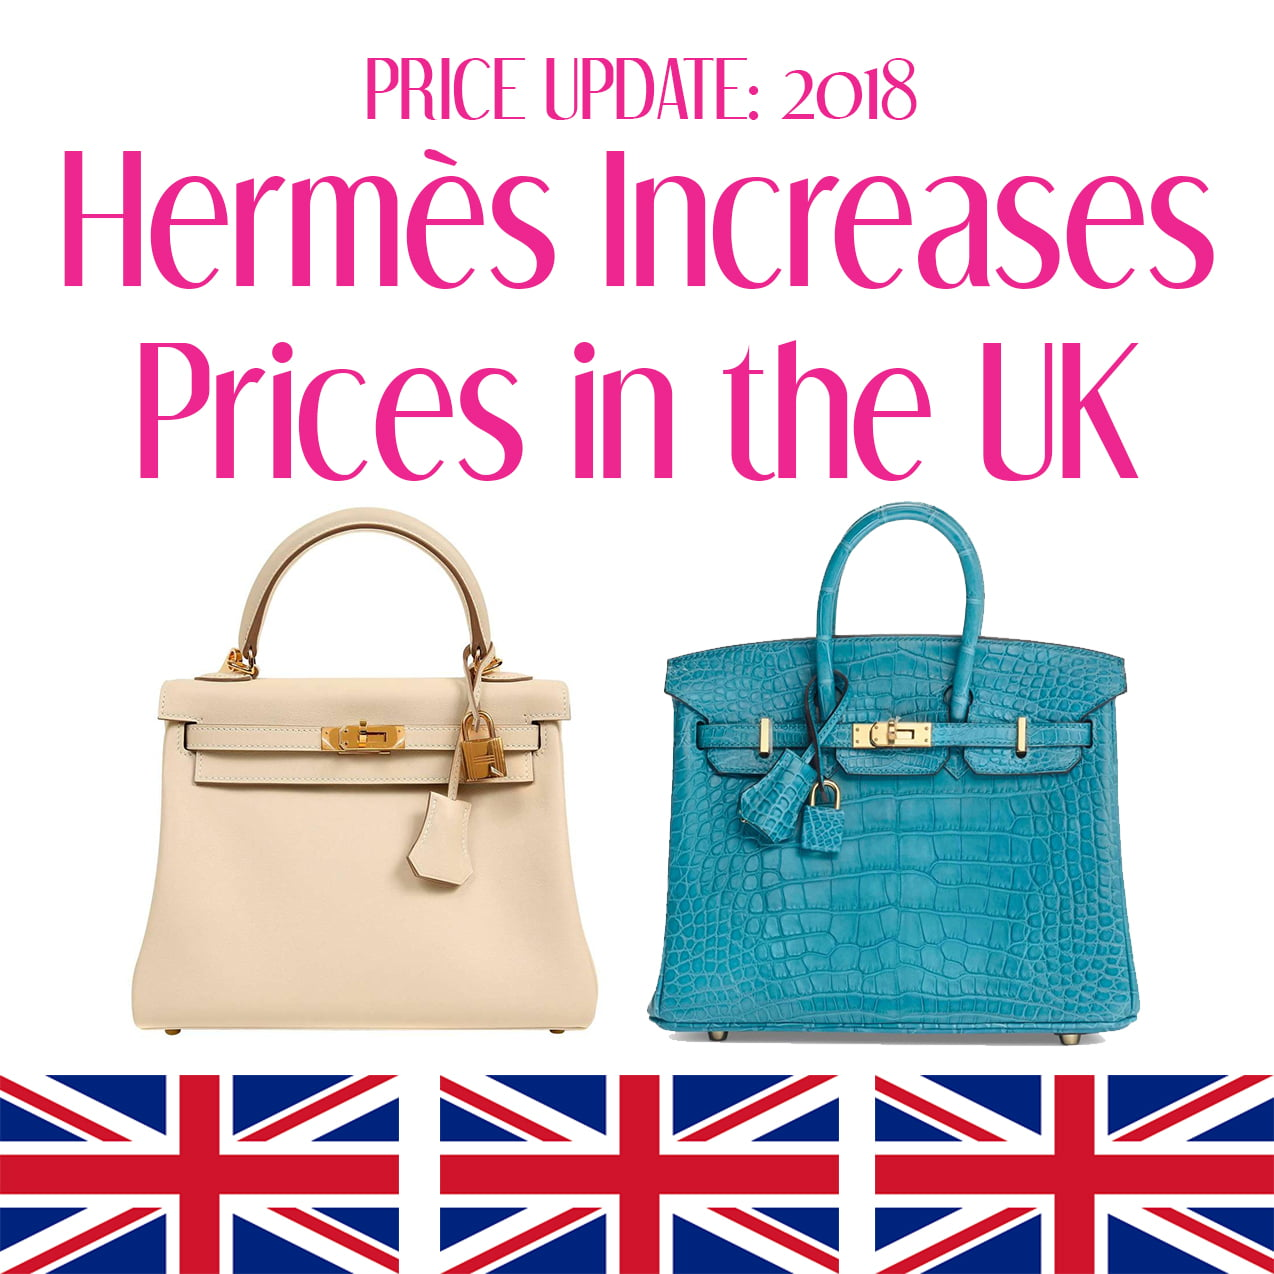 hermes prices 2018